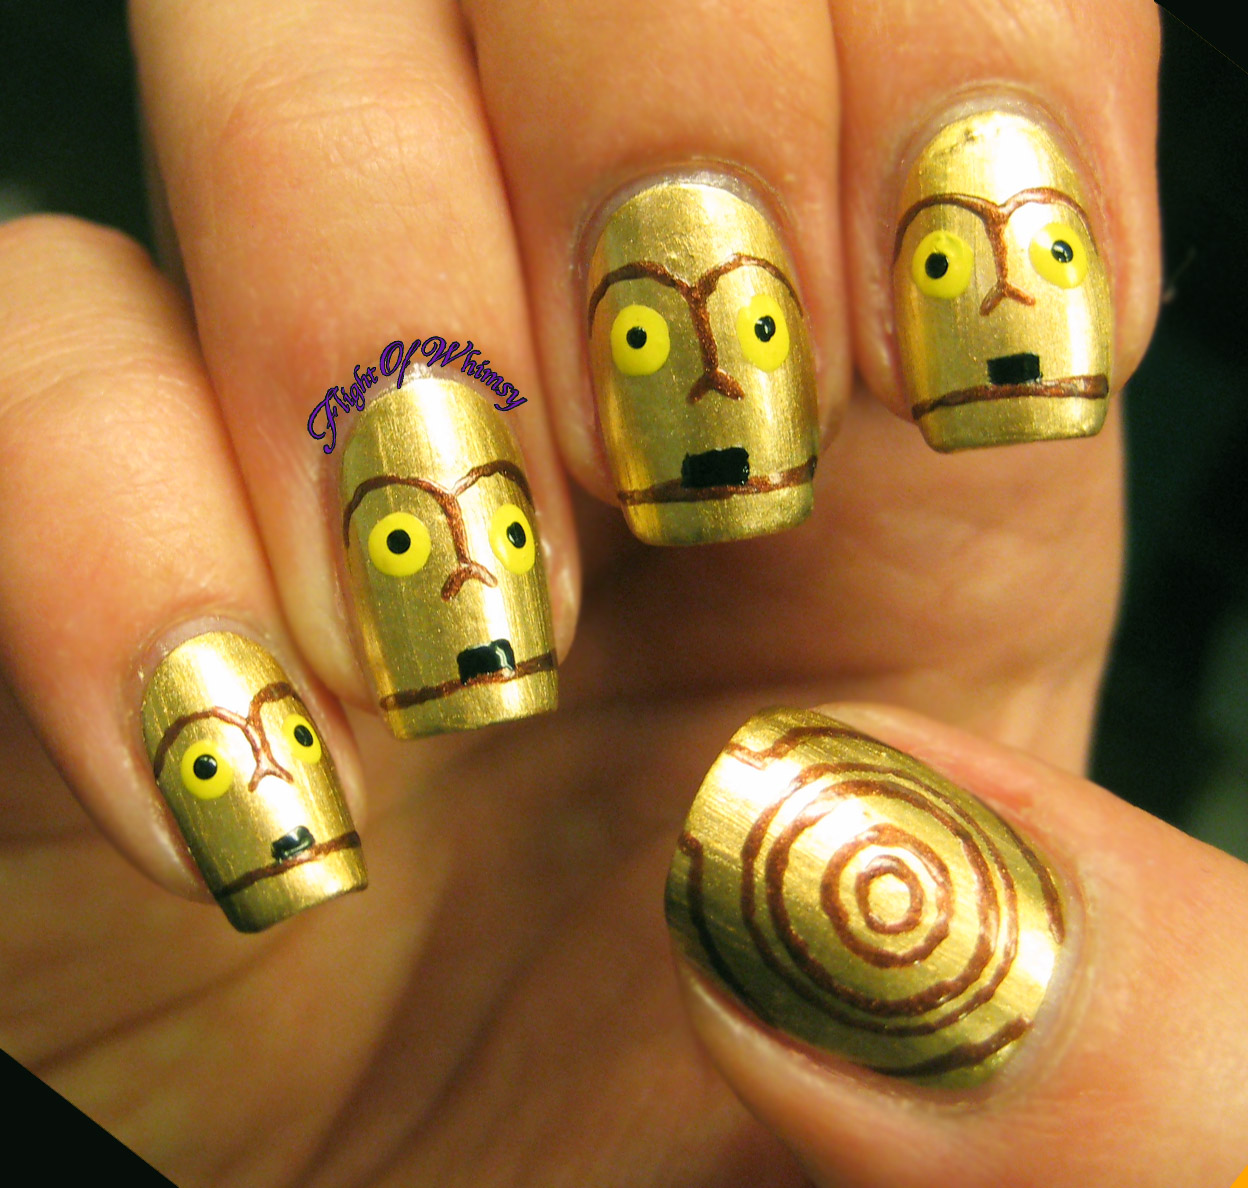 C3PO nails by Flight of Whimsy